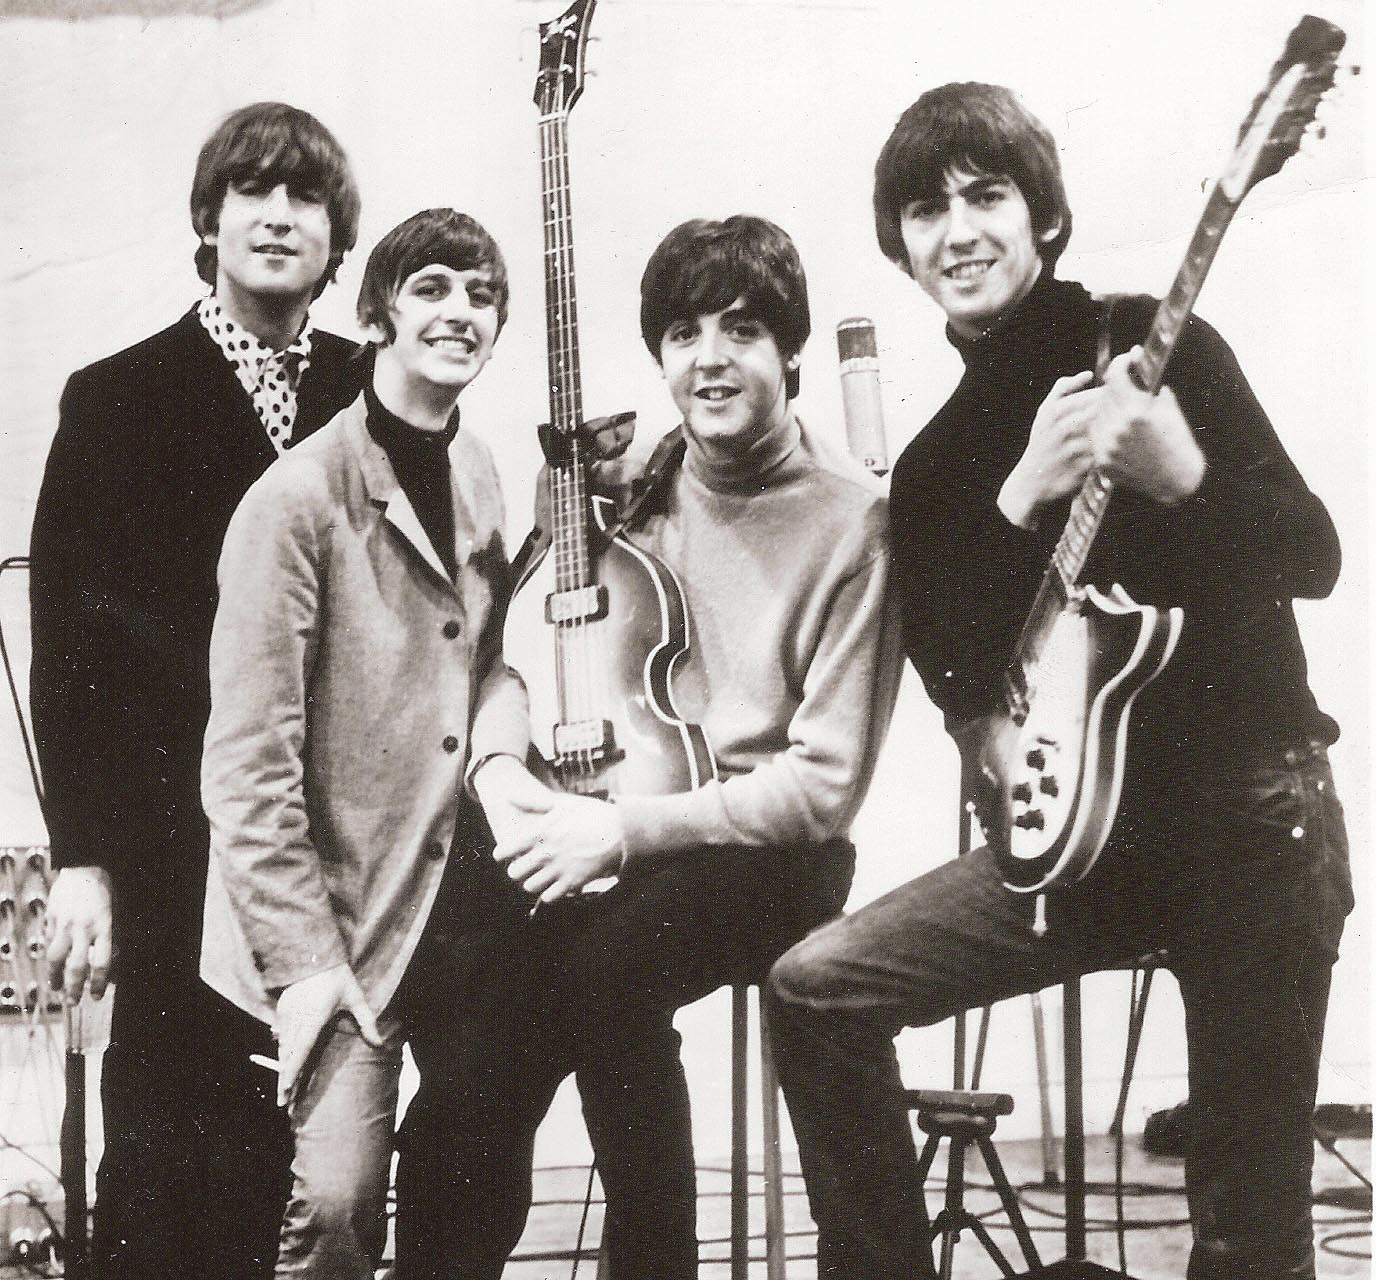 Imagine The World: The BEATLES